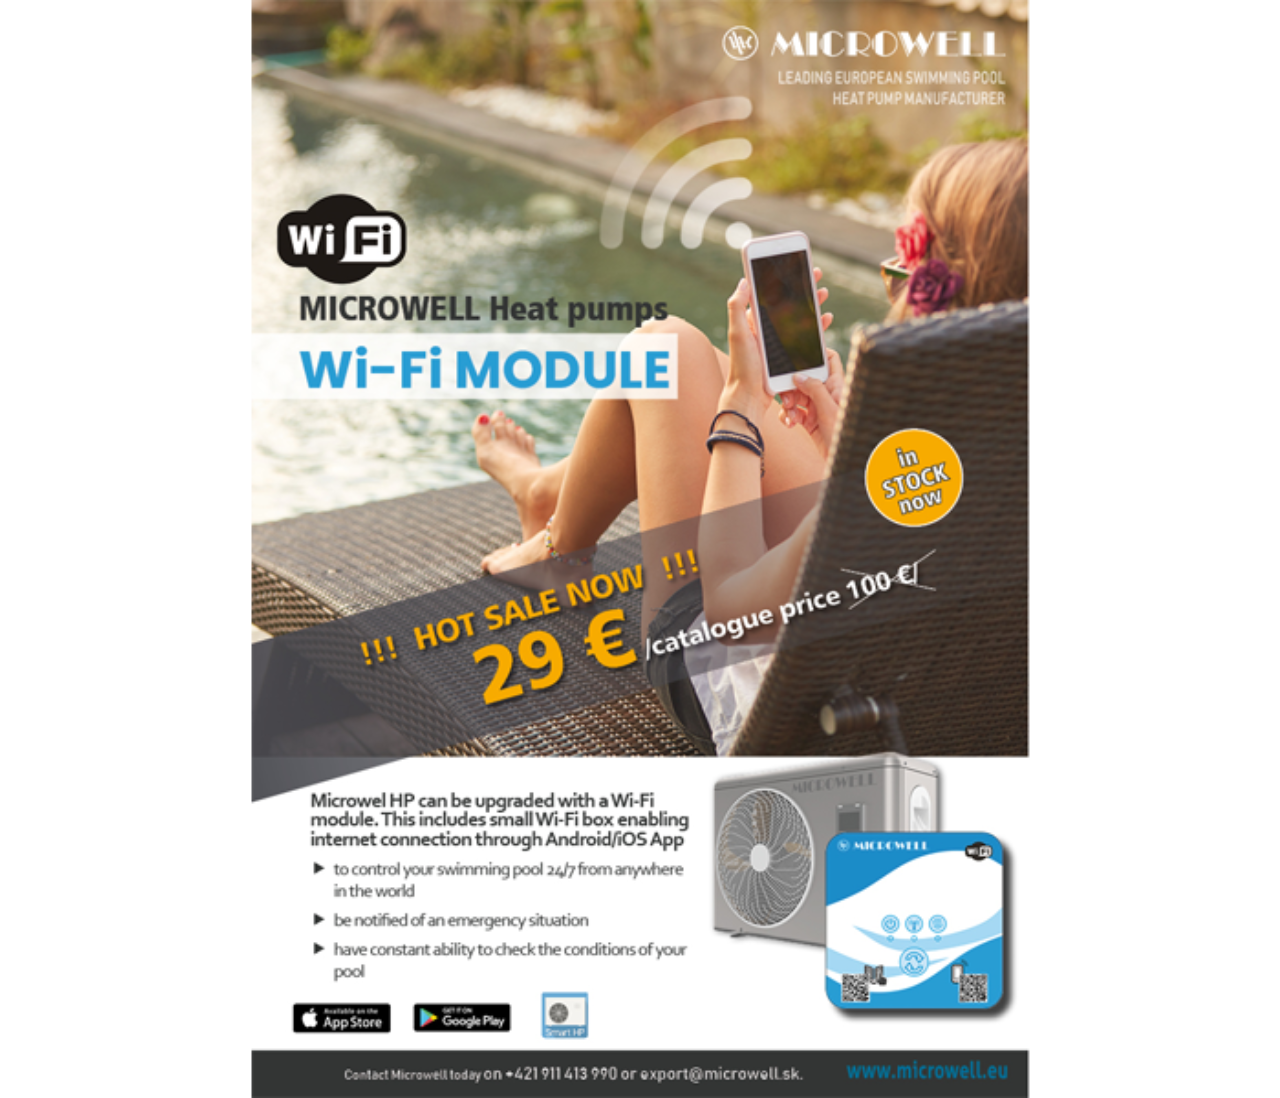 Wi-Fi Hot sale | Blog - Microwell